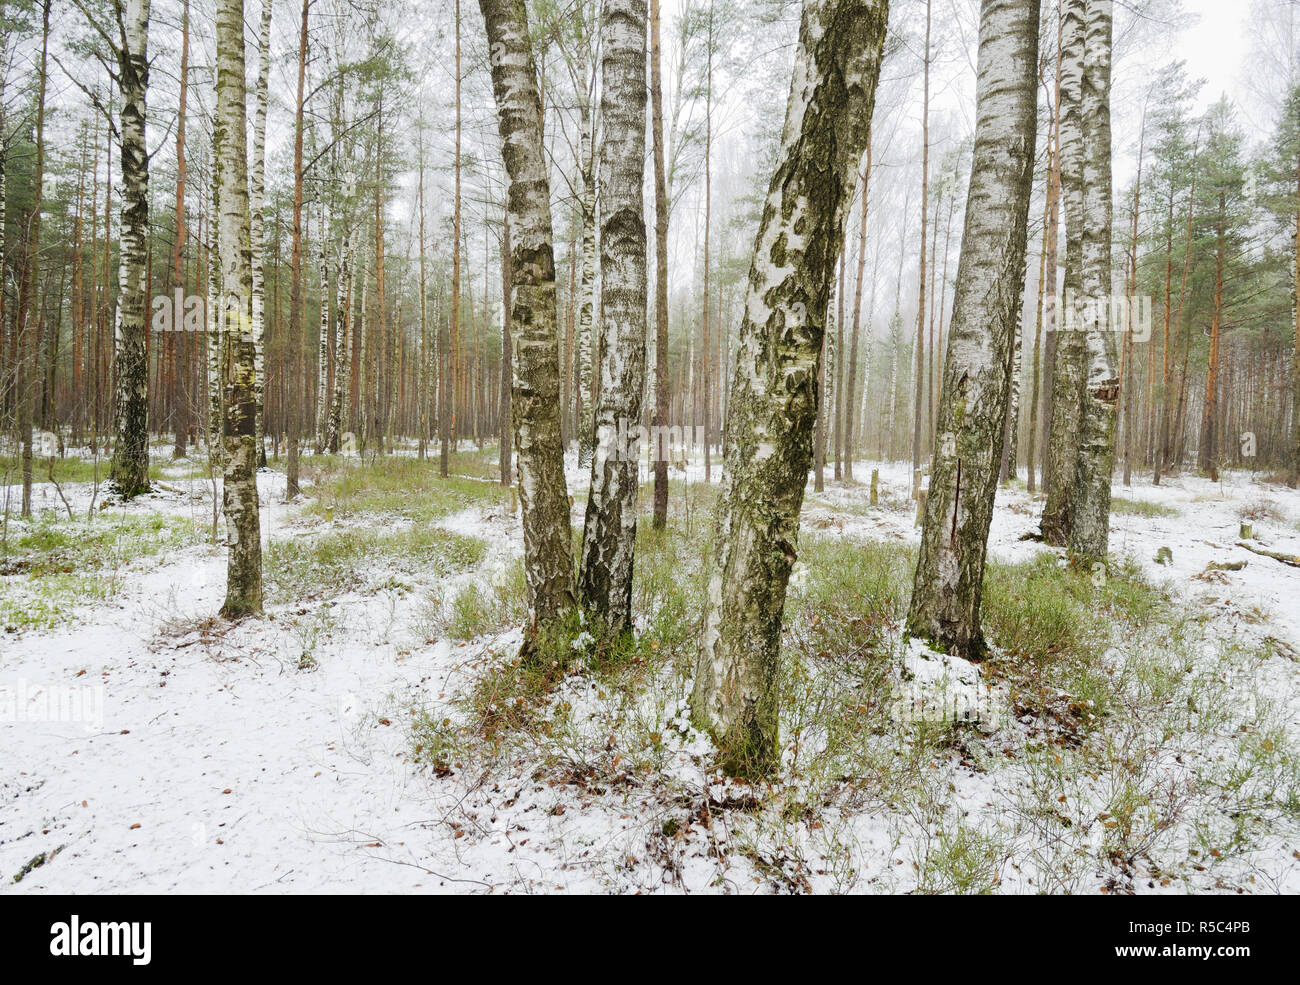 Birch grove in winter.The bark of the trees has a black and white color. Stock Photo